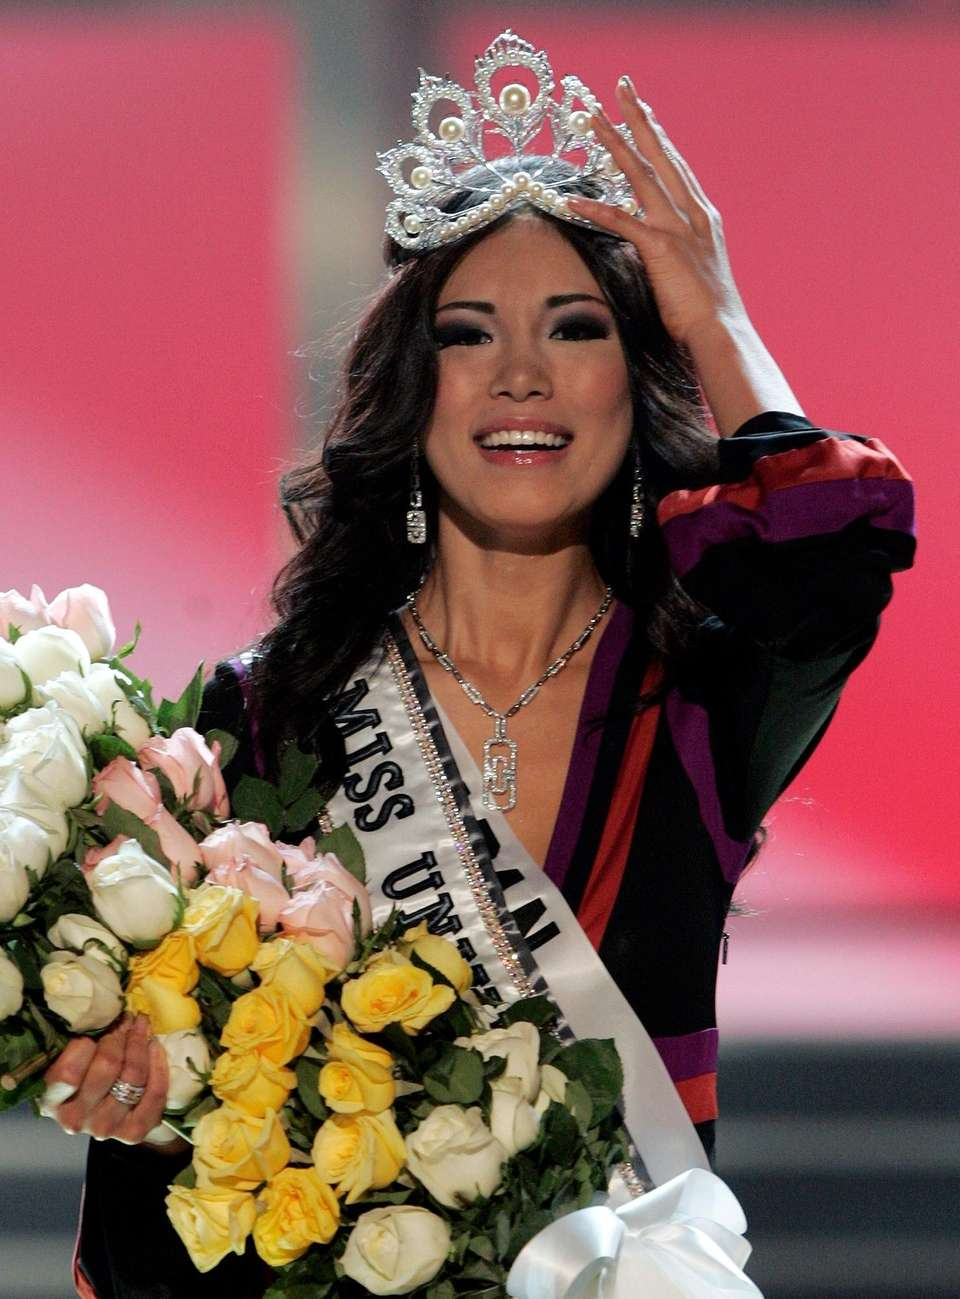 miss universe winners through the years newsday